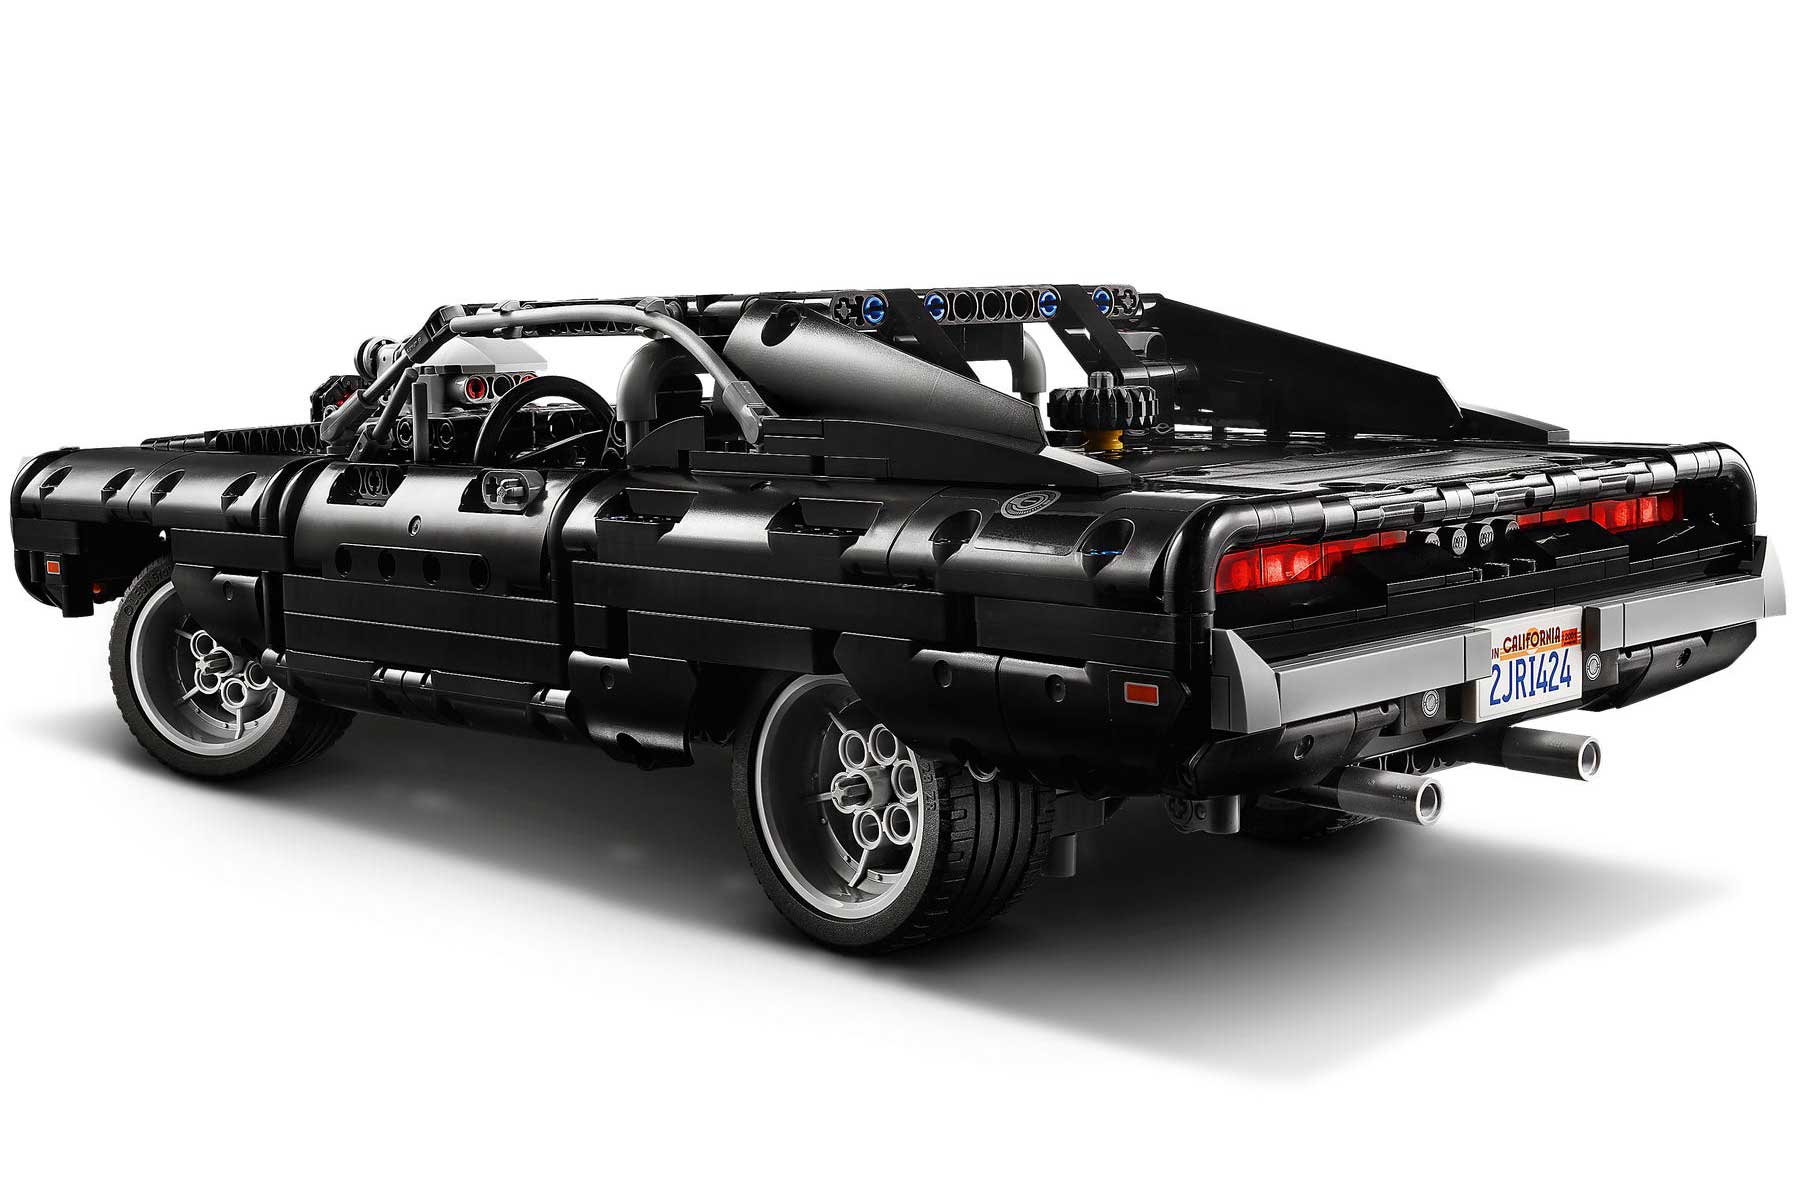 Dodge Charger fast and furious Dom lego technic